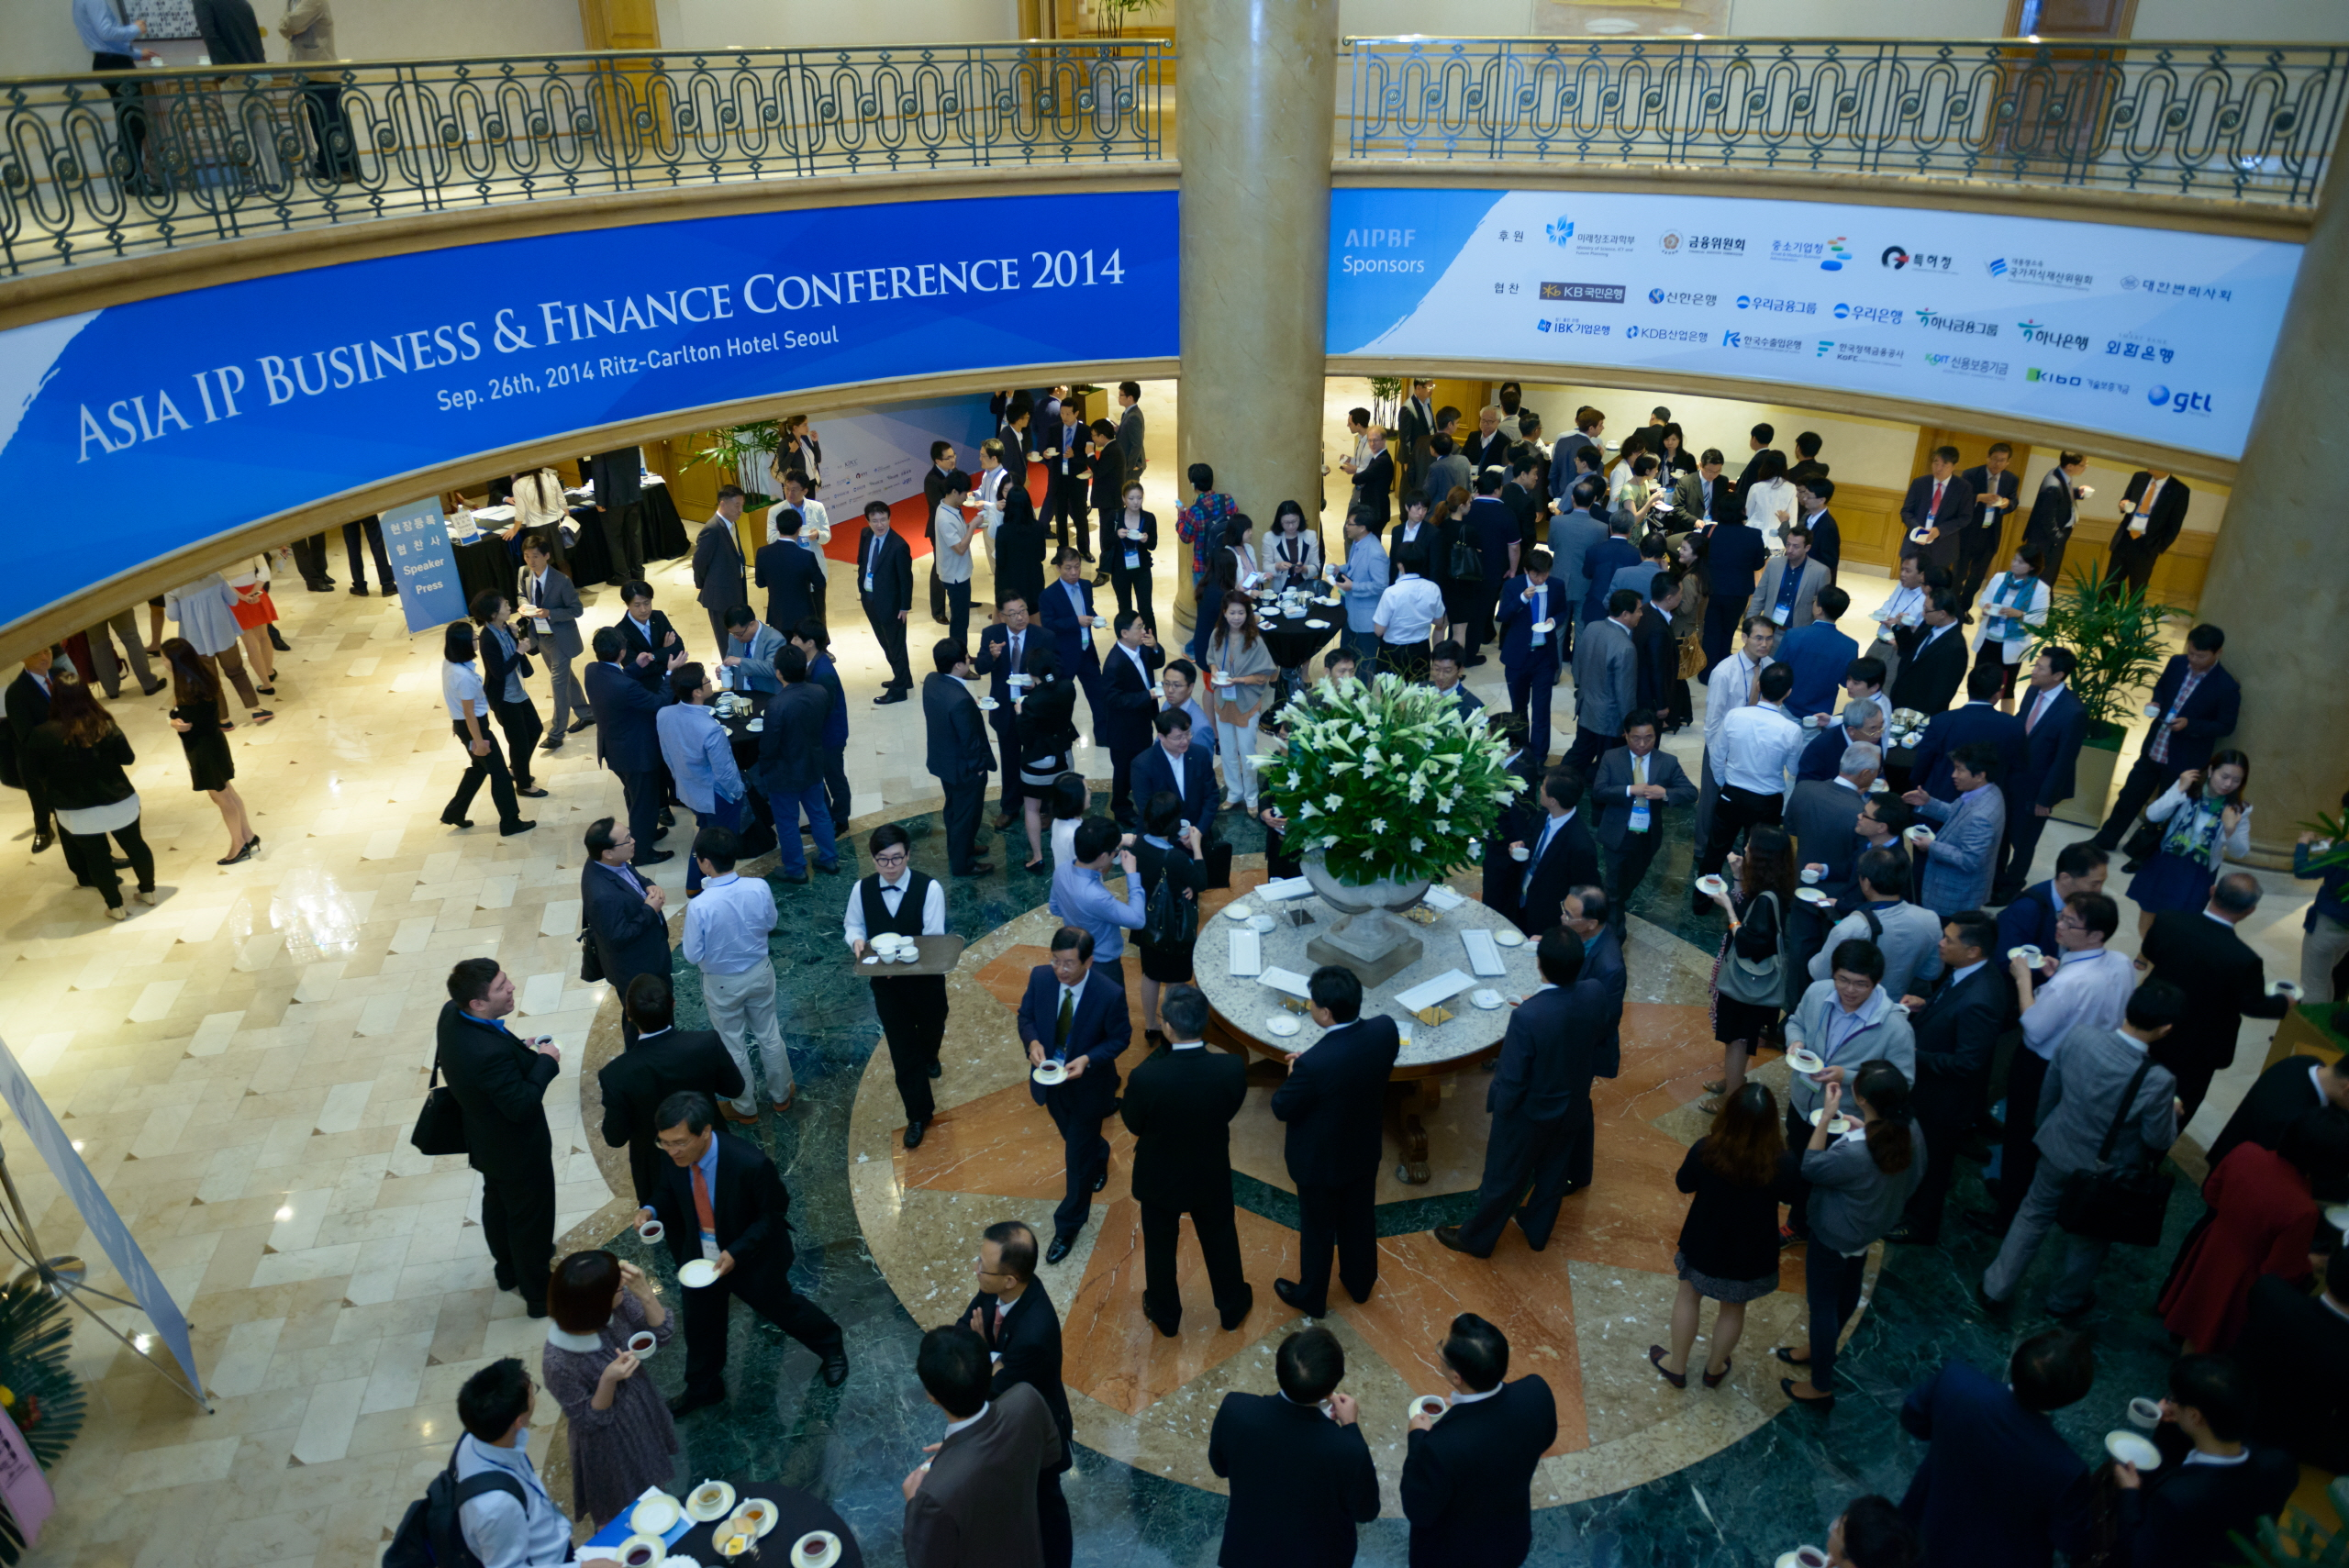 2014-09-26-AIPBF-Conference-2625